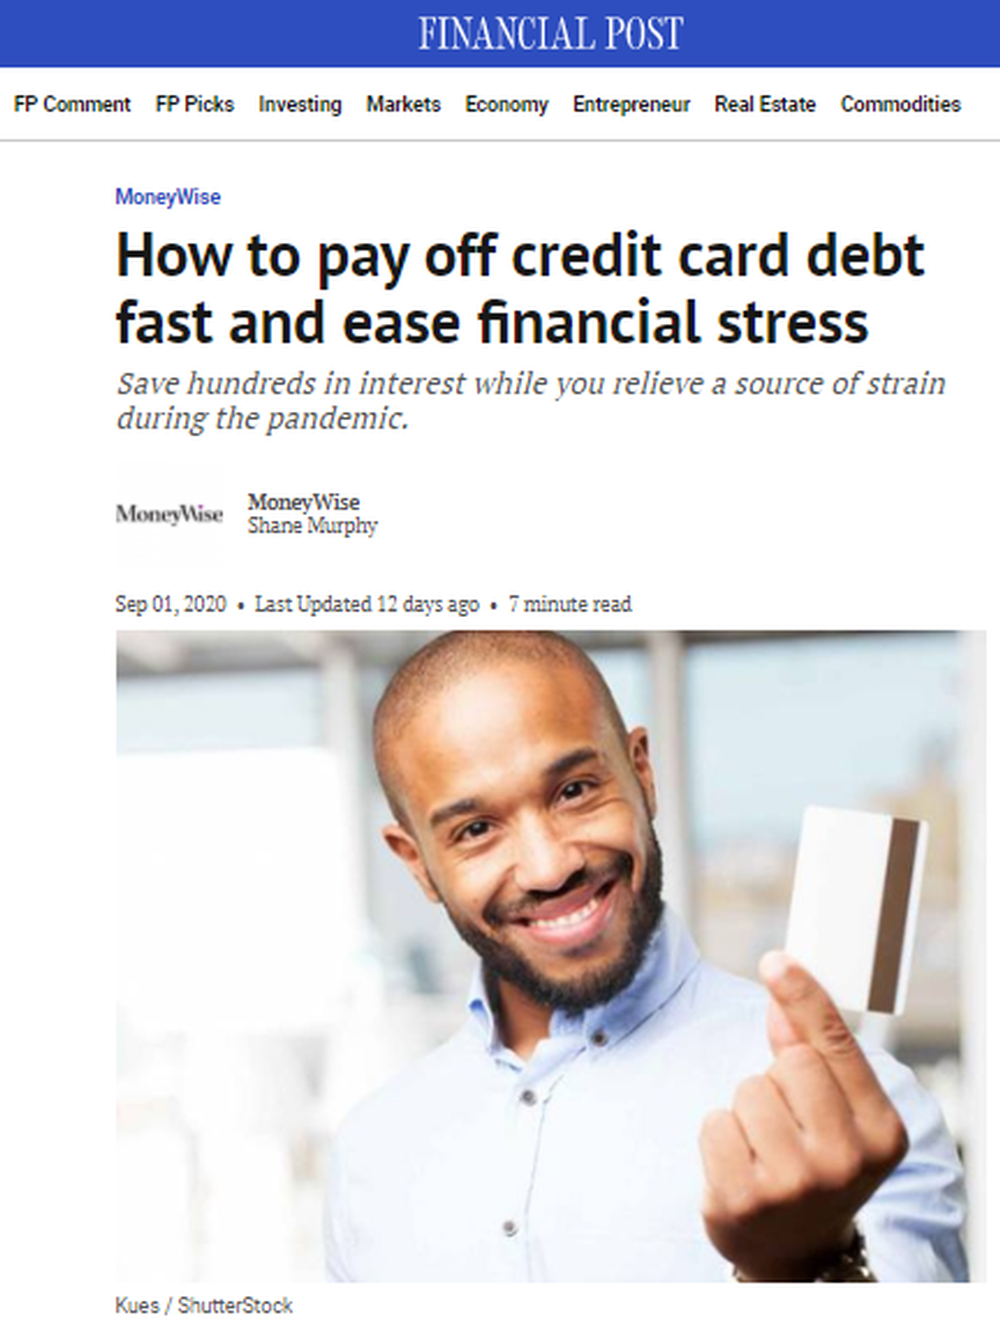 How-to-pay-off-credit-card-debt-fast-and-ease-financial-stress-Financial-Post.png